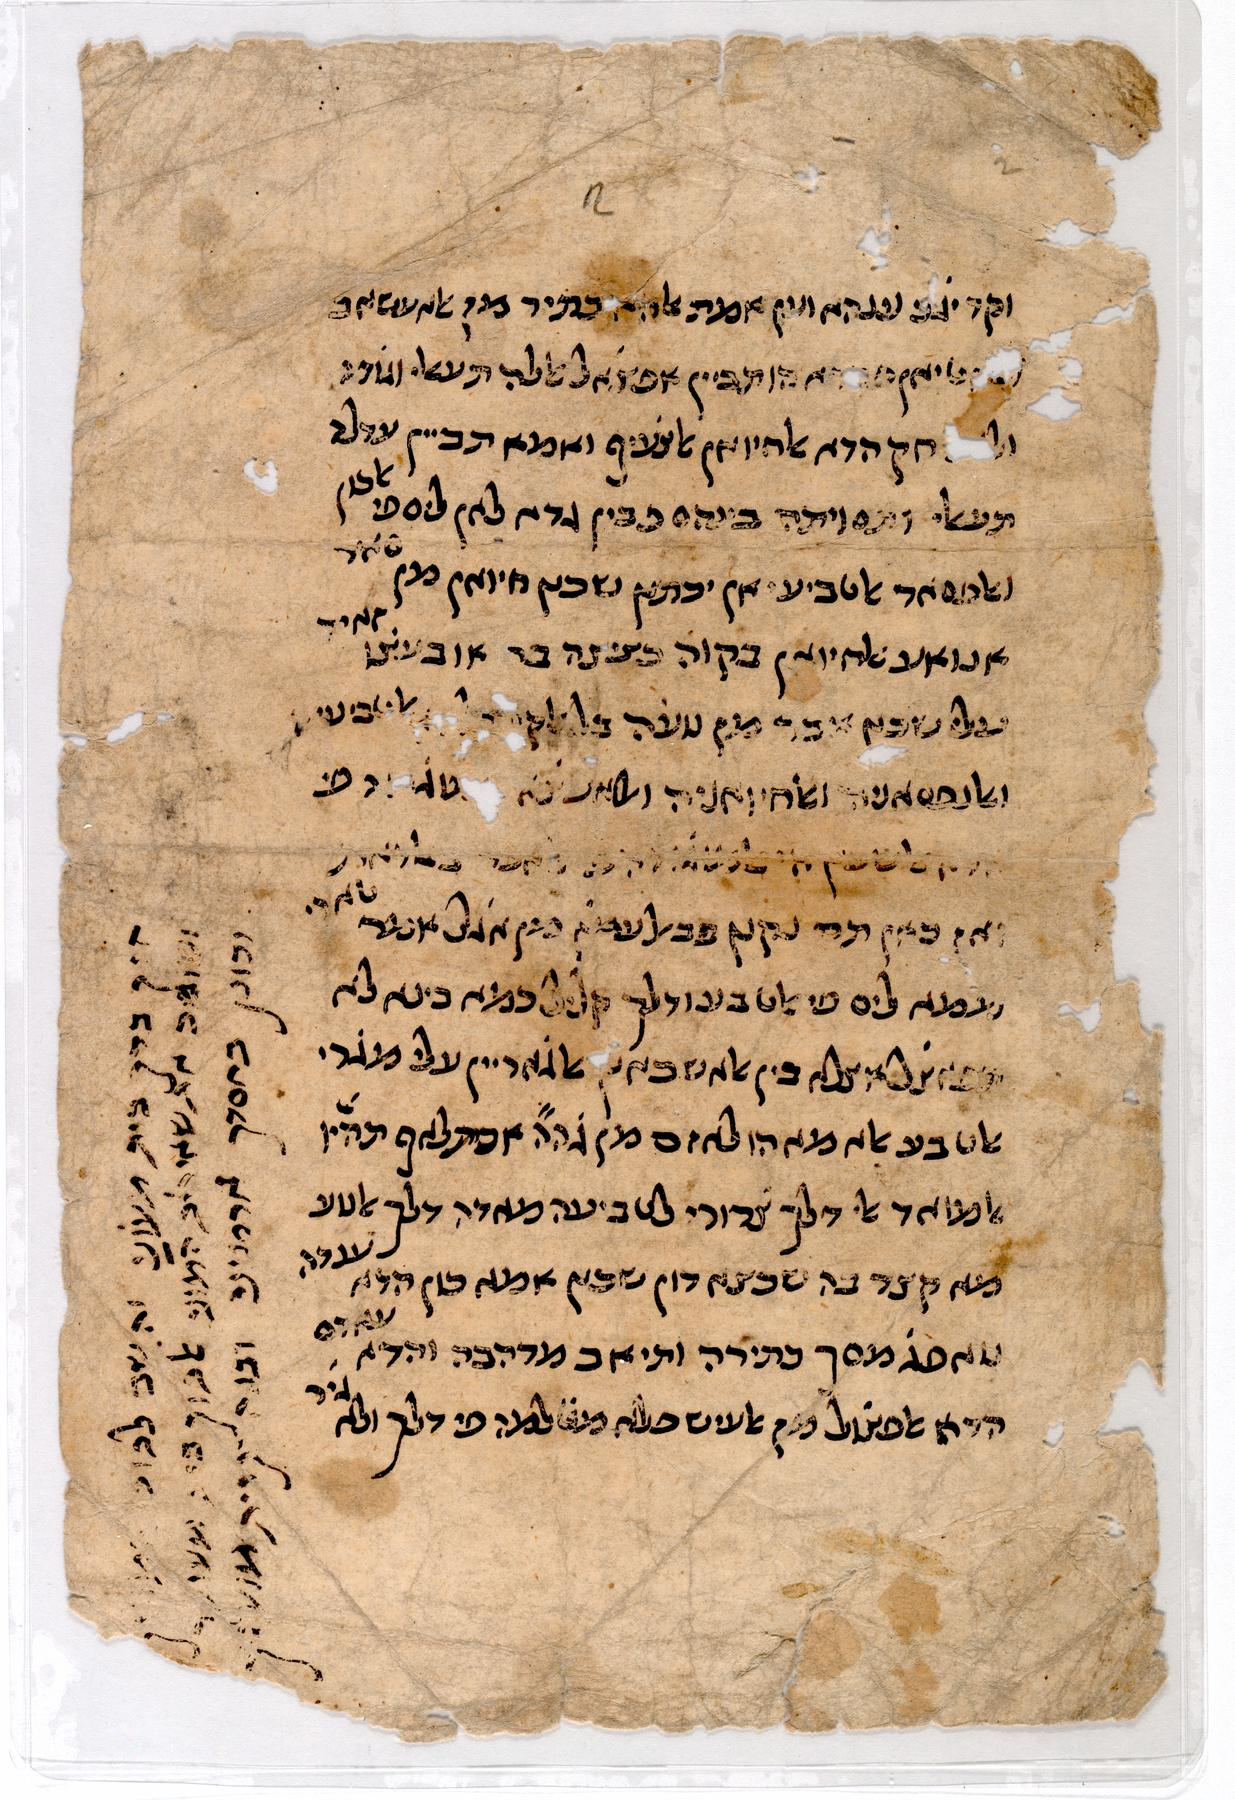 See this leaf in the context of Penn's Cairo Genizah Site